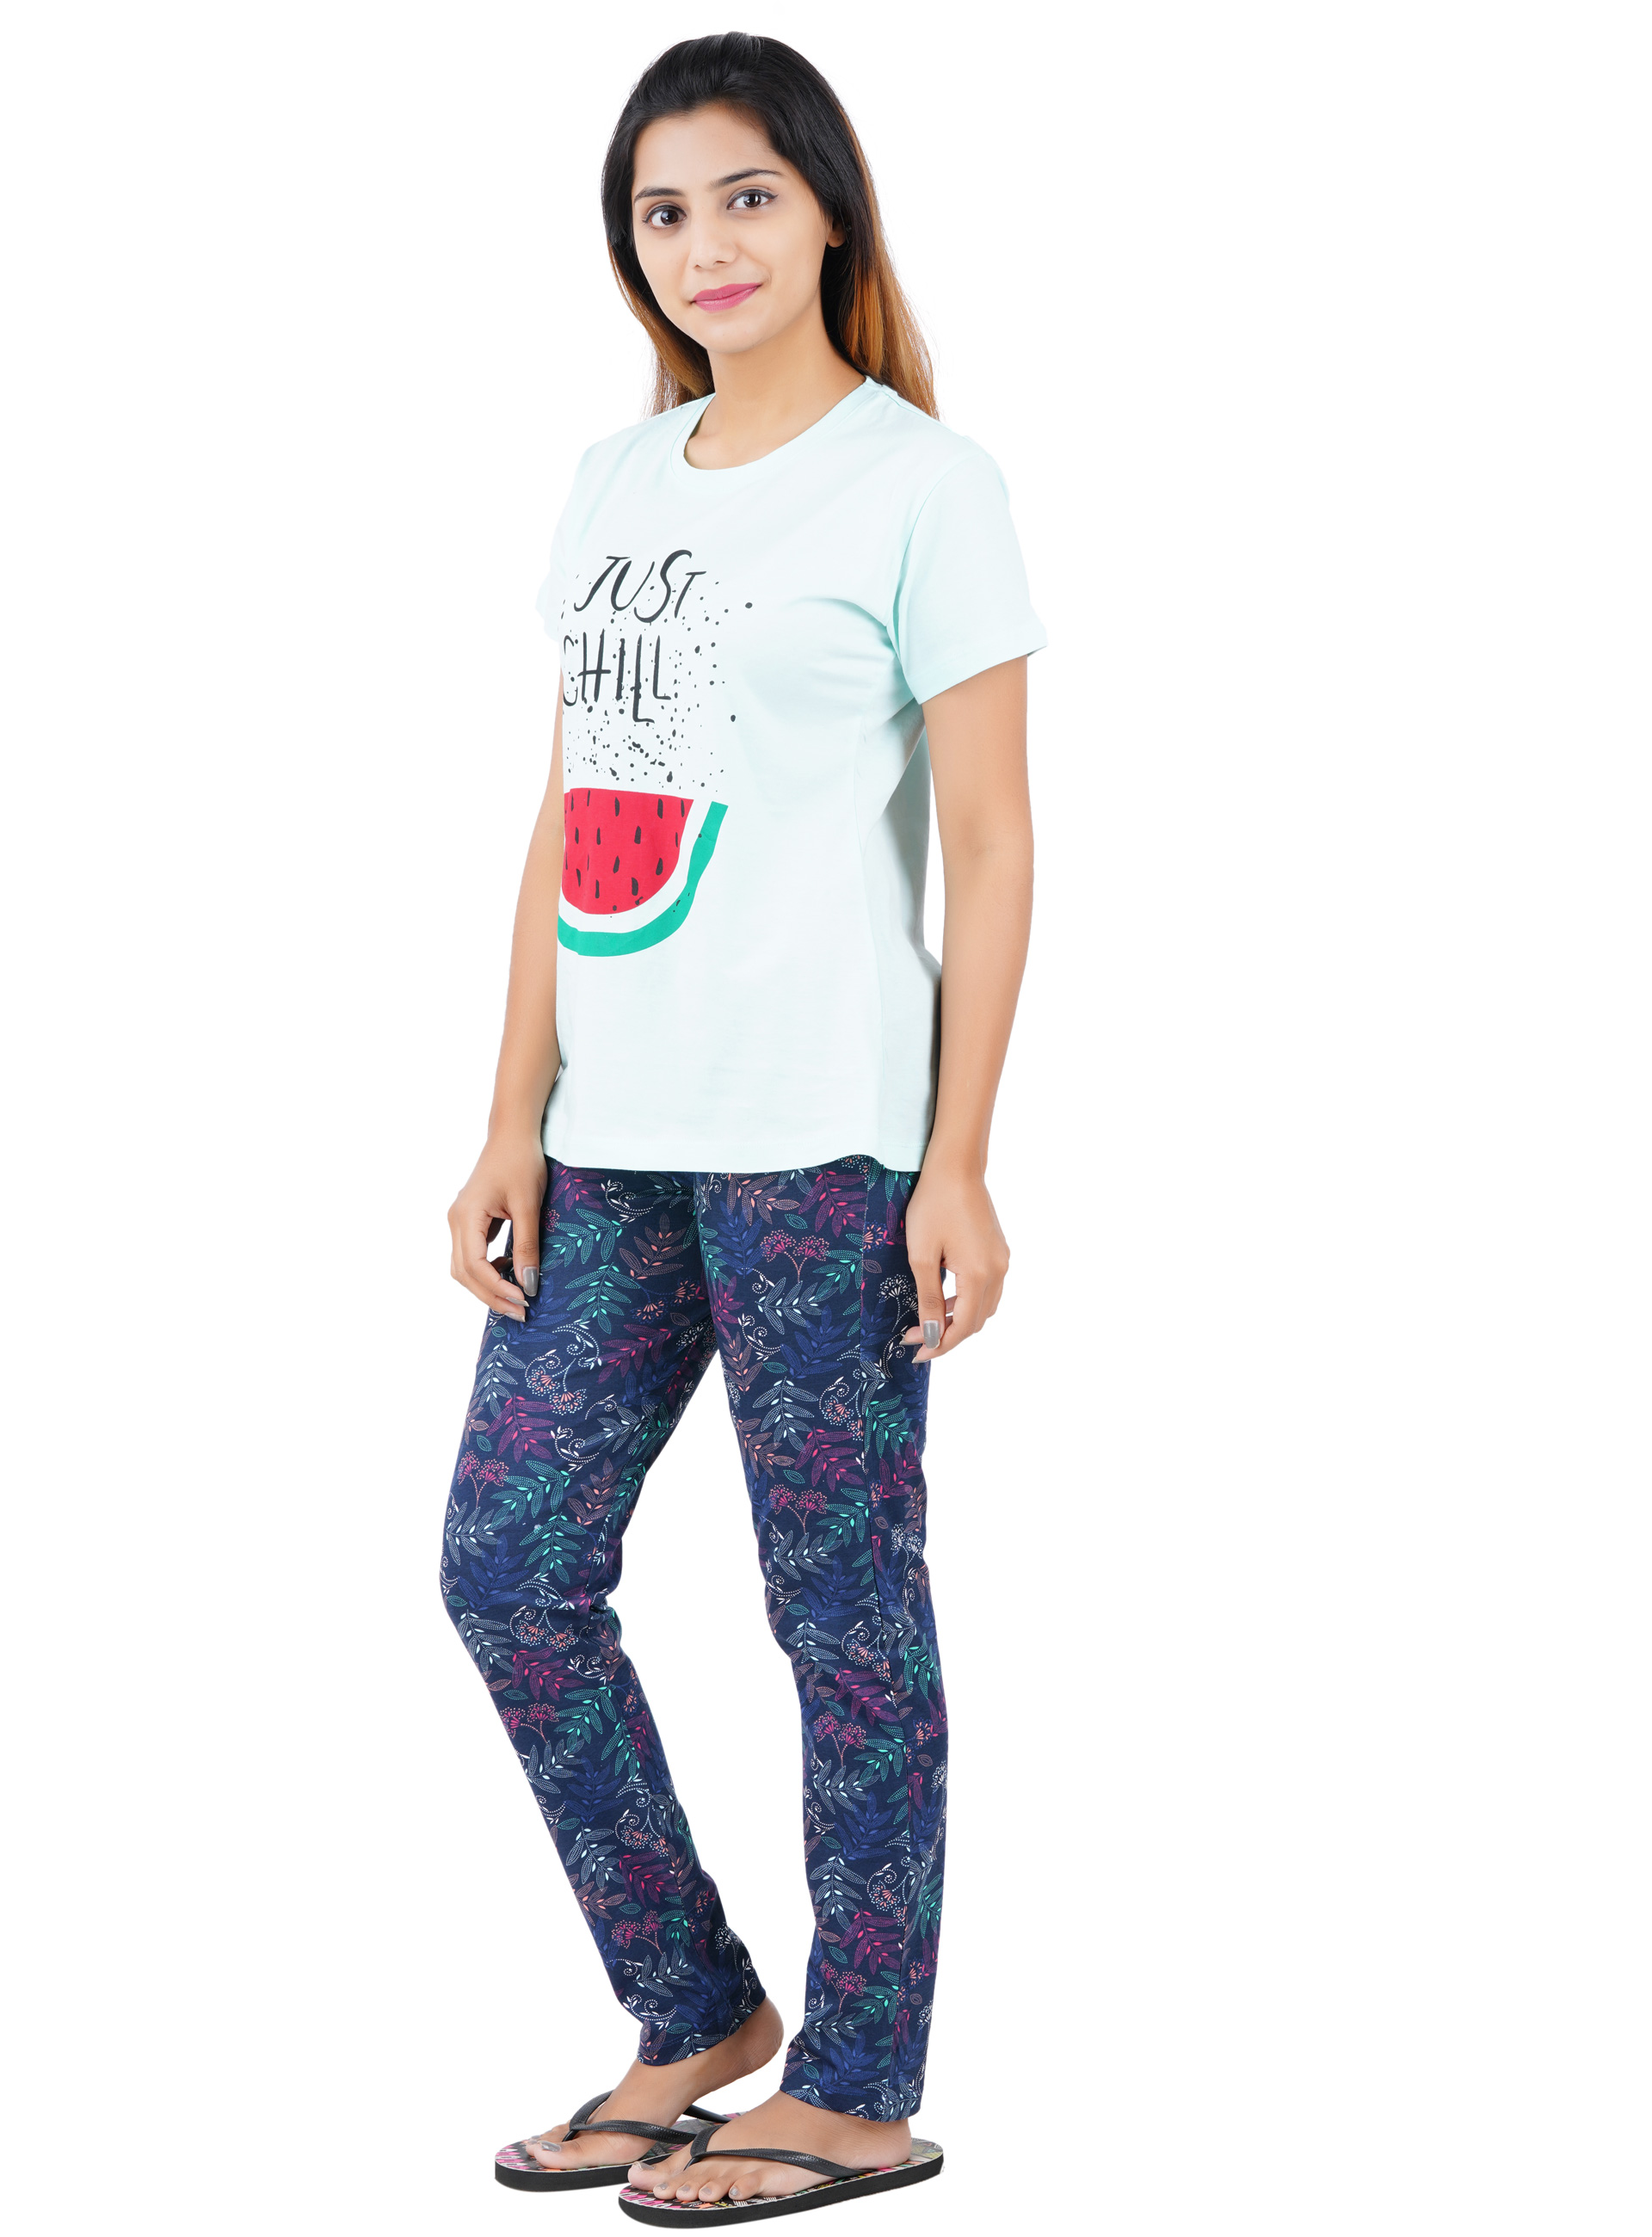 Aswati Watermelon Full Set Pyjama - Just Chill